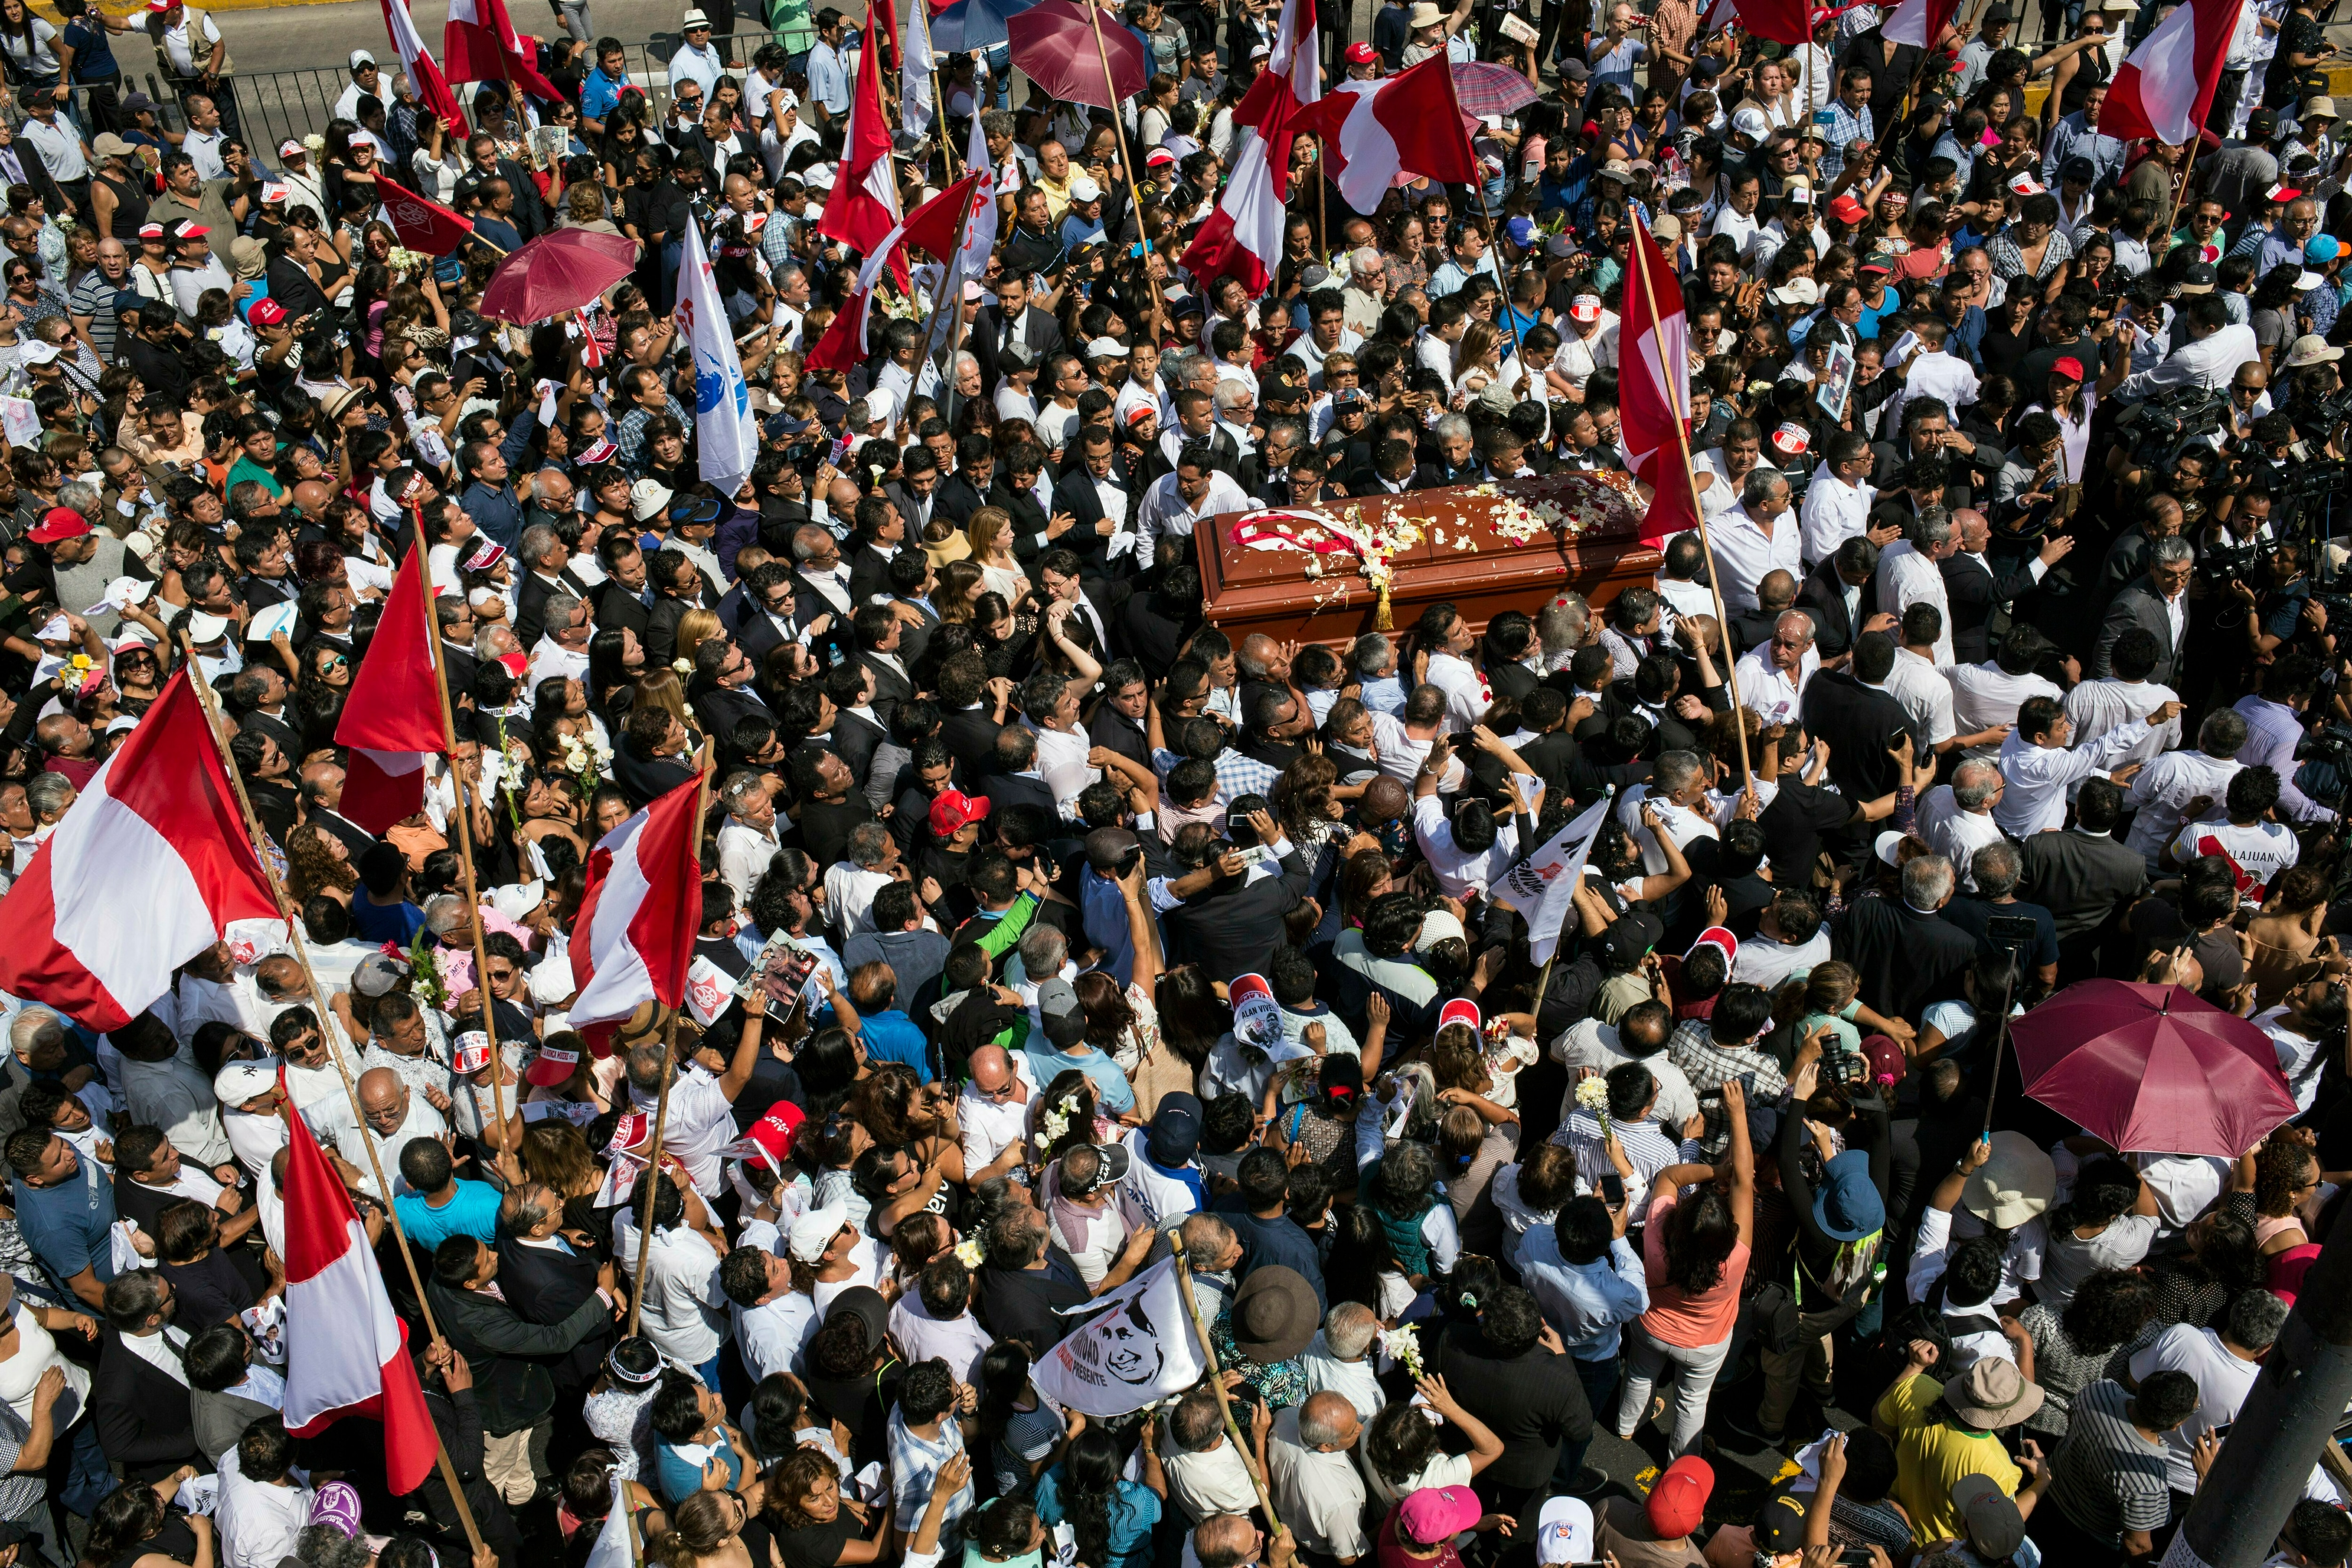 People carry the coffin of Peru's late President Alan Garcia during his funeral procession in Lima, Peru.